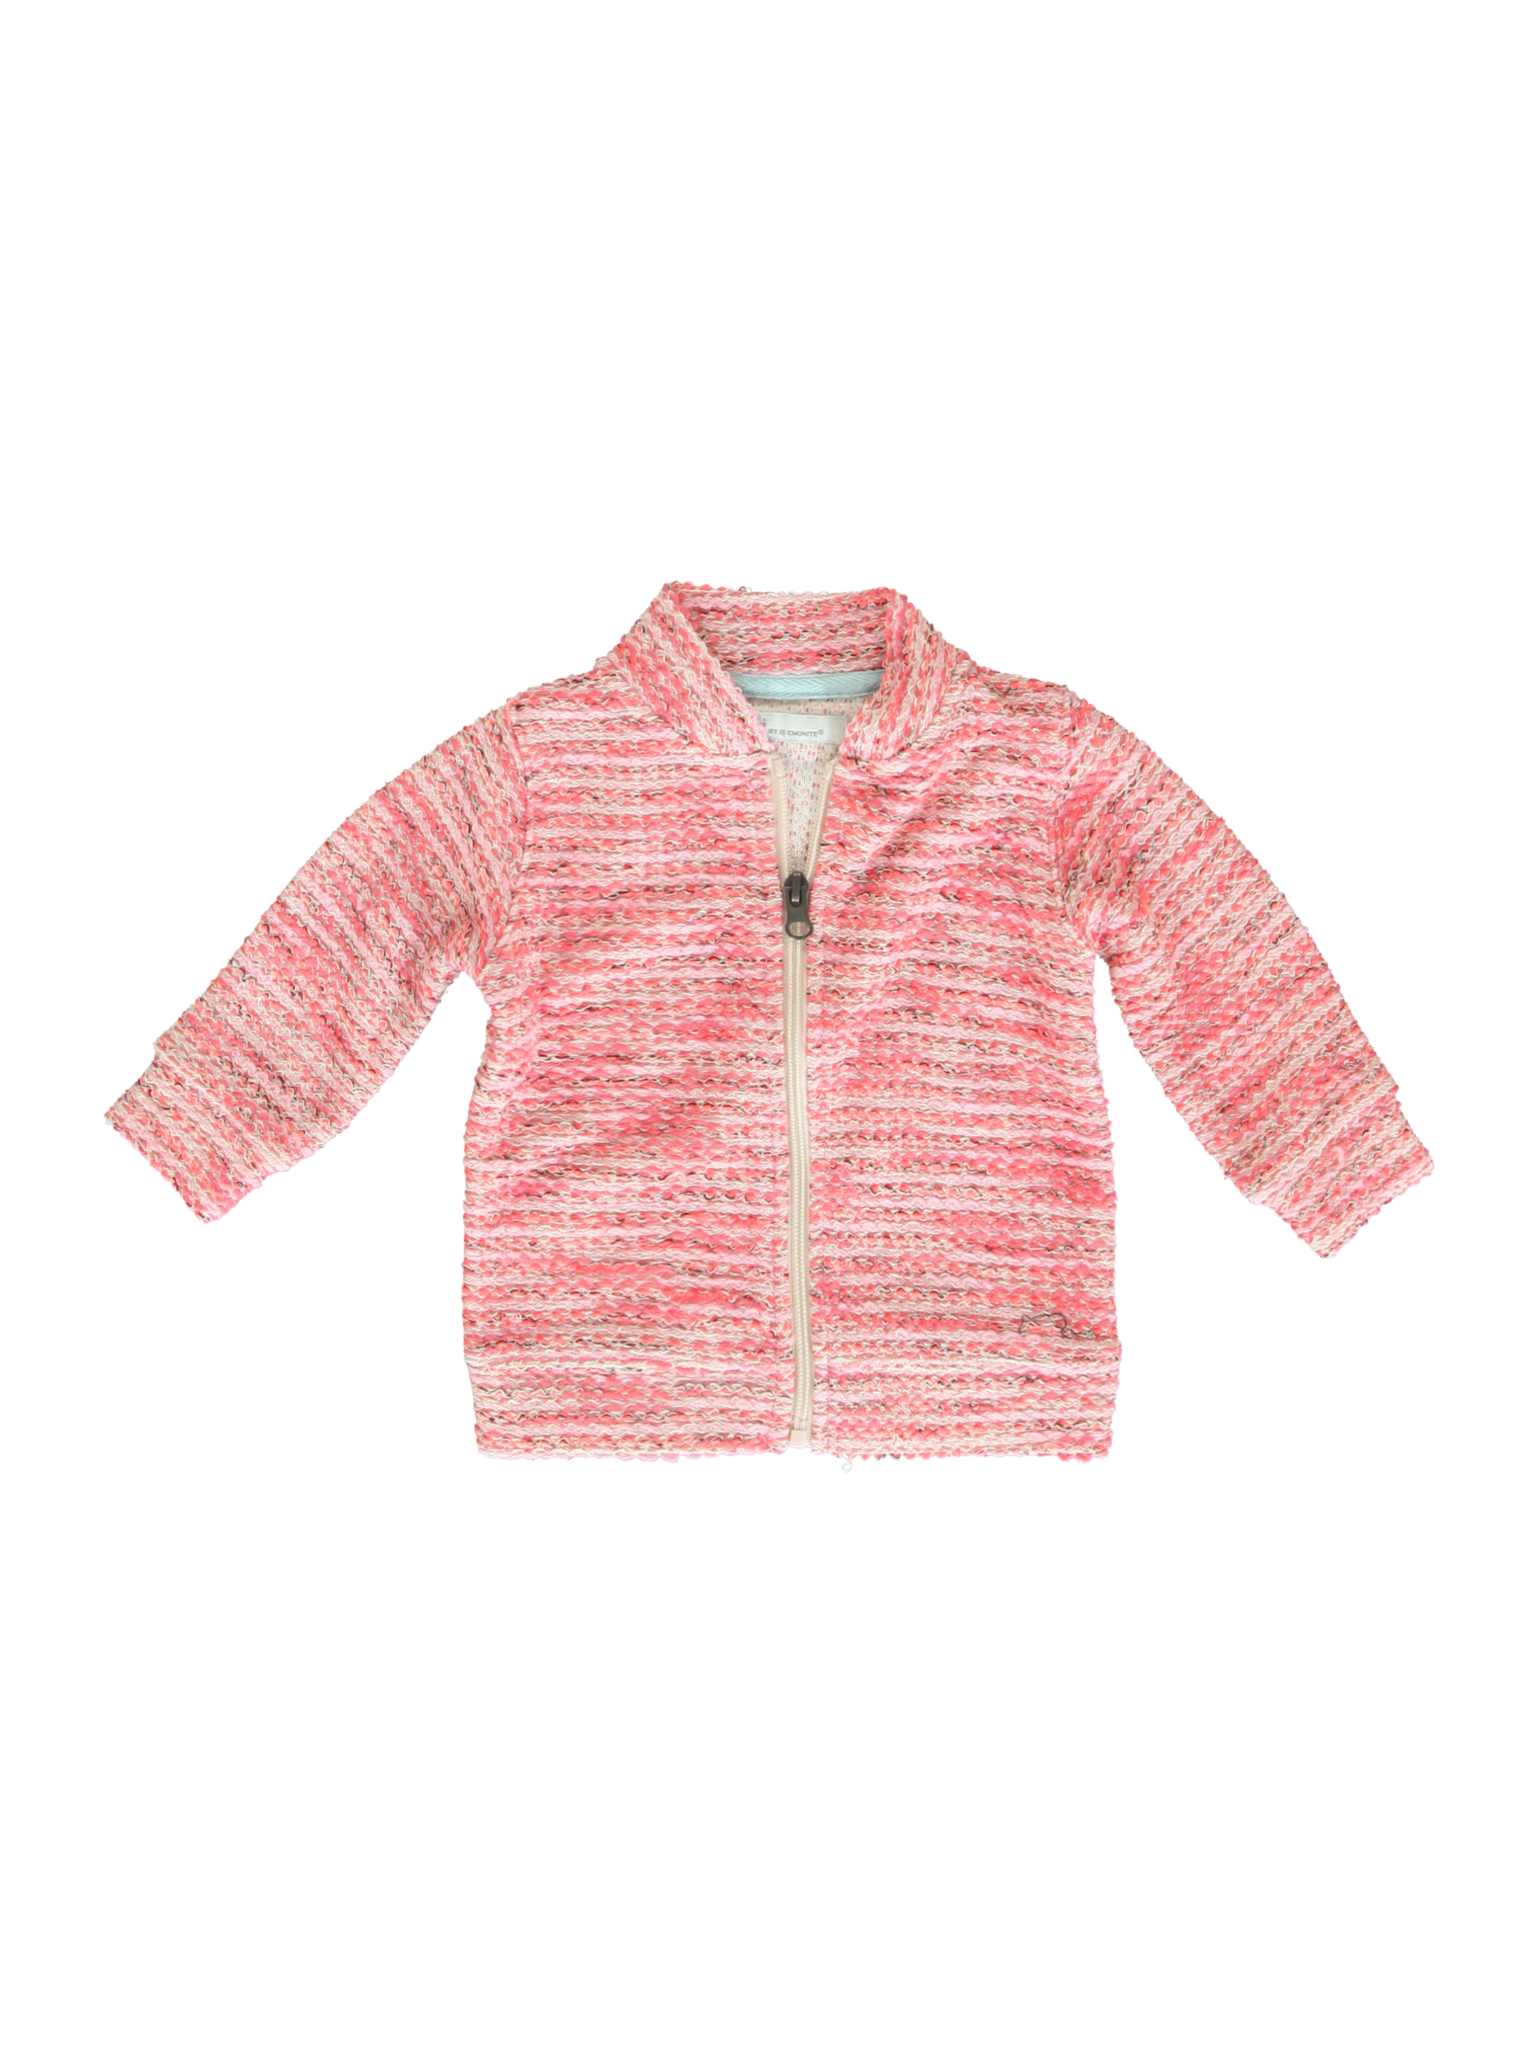 All Brands | Summerproducts Baby | Cardigan Sweater | 24 pcs/box